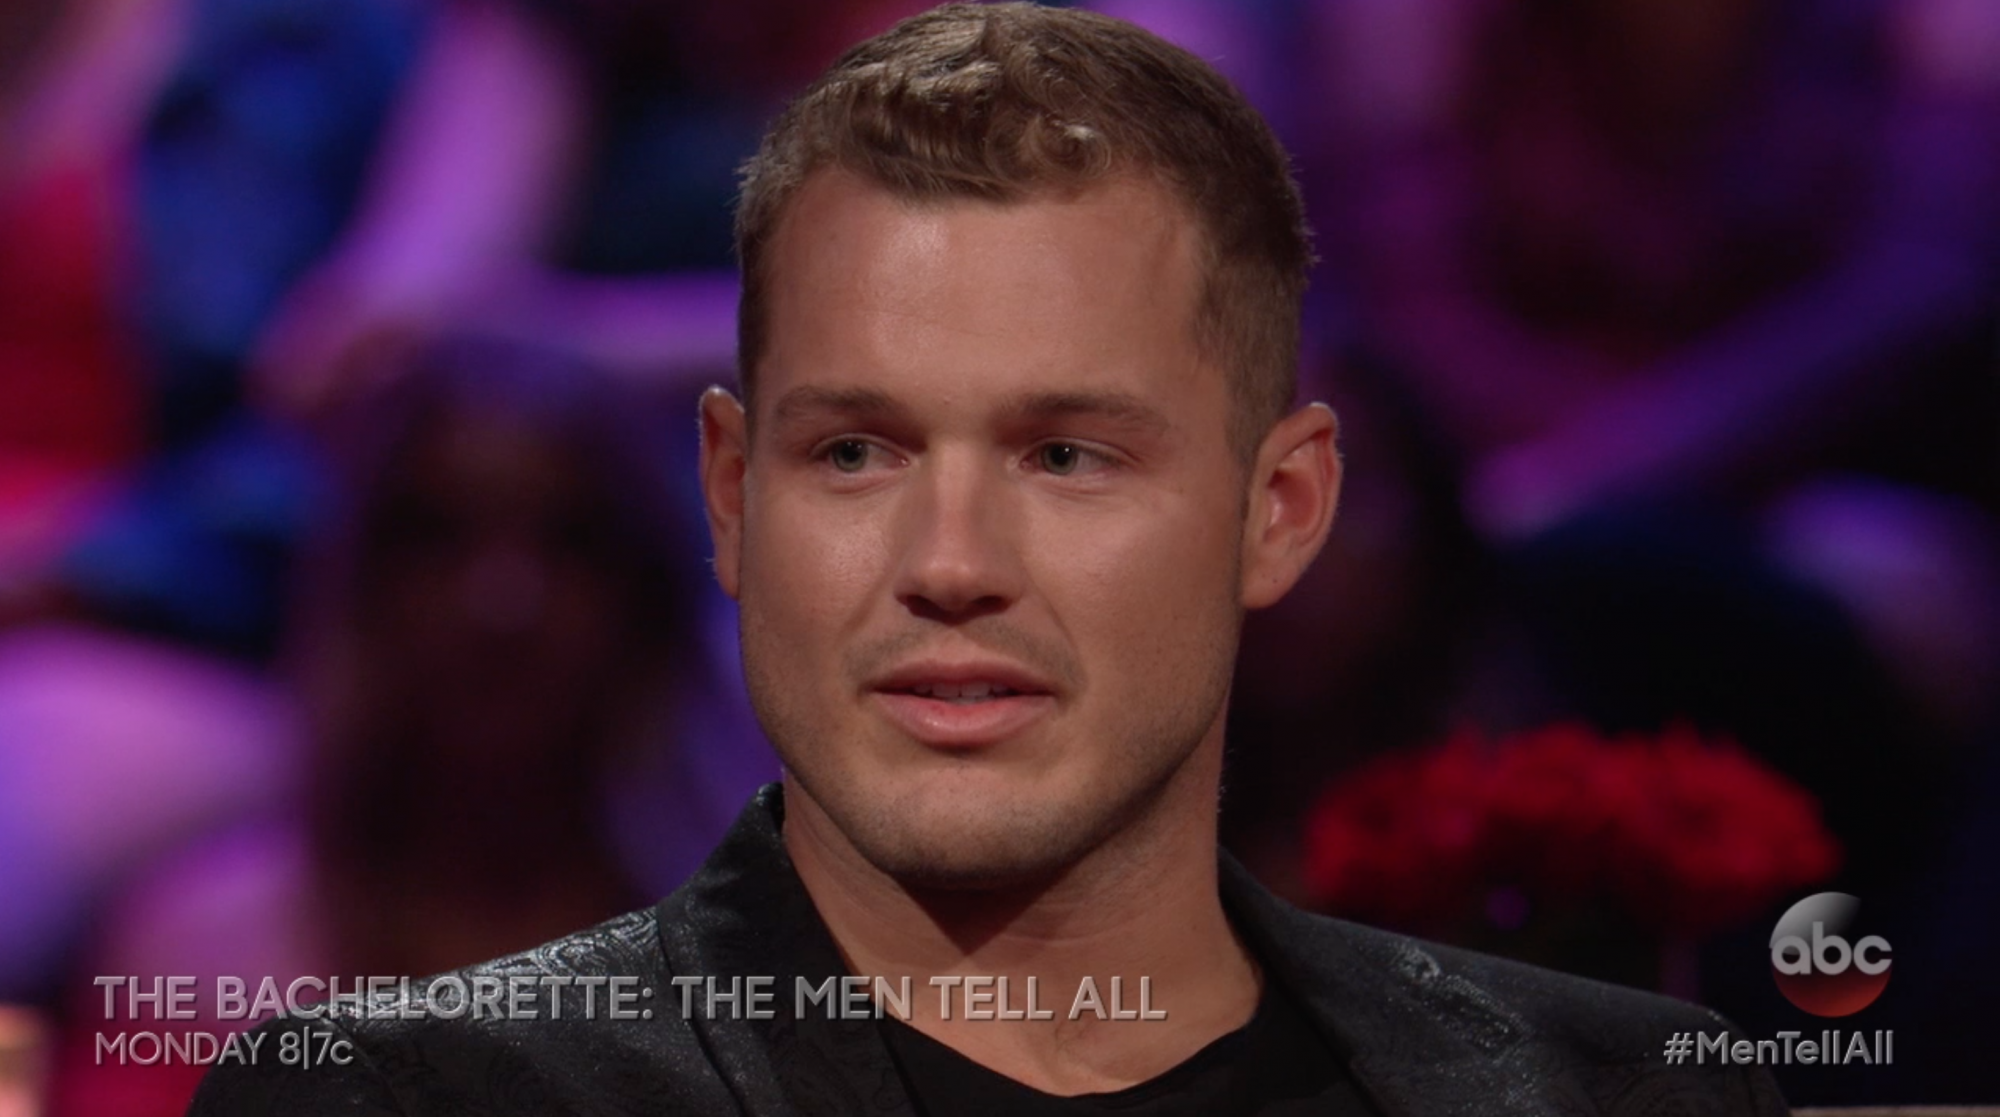 Colton Underwood at the Bachelorette: Men Tell All